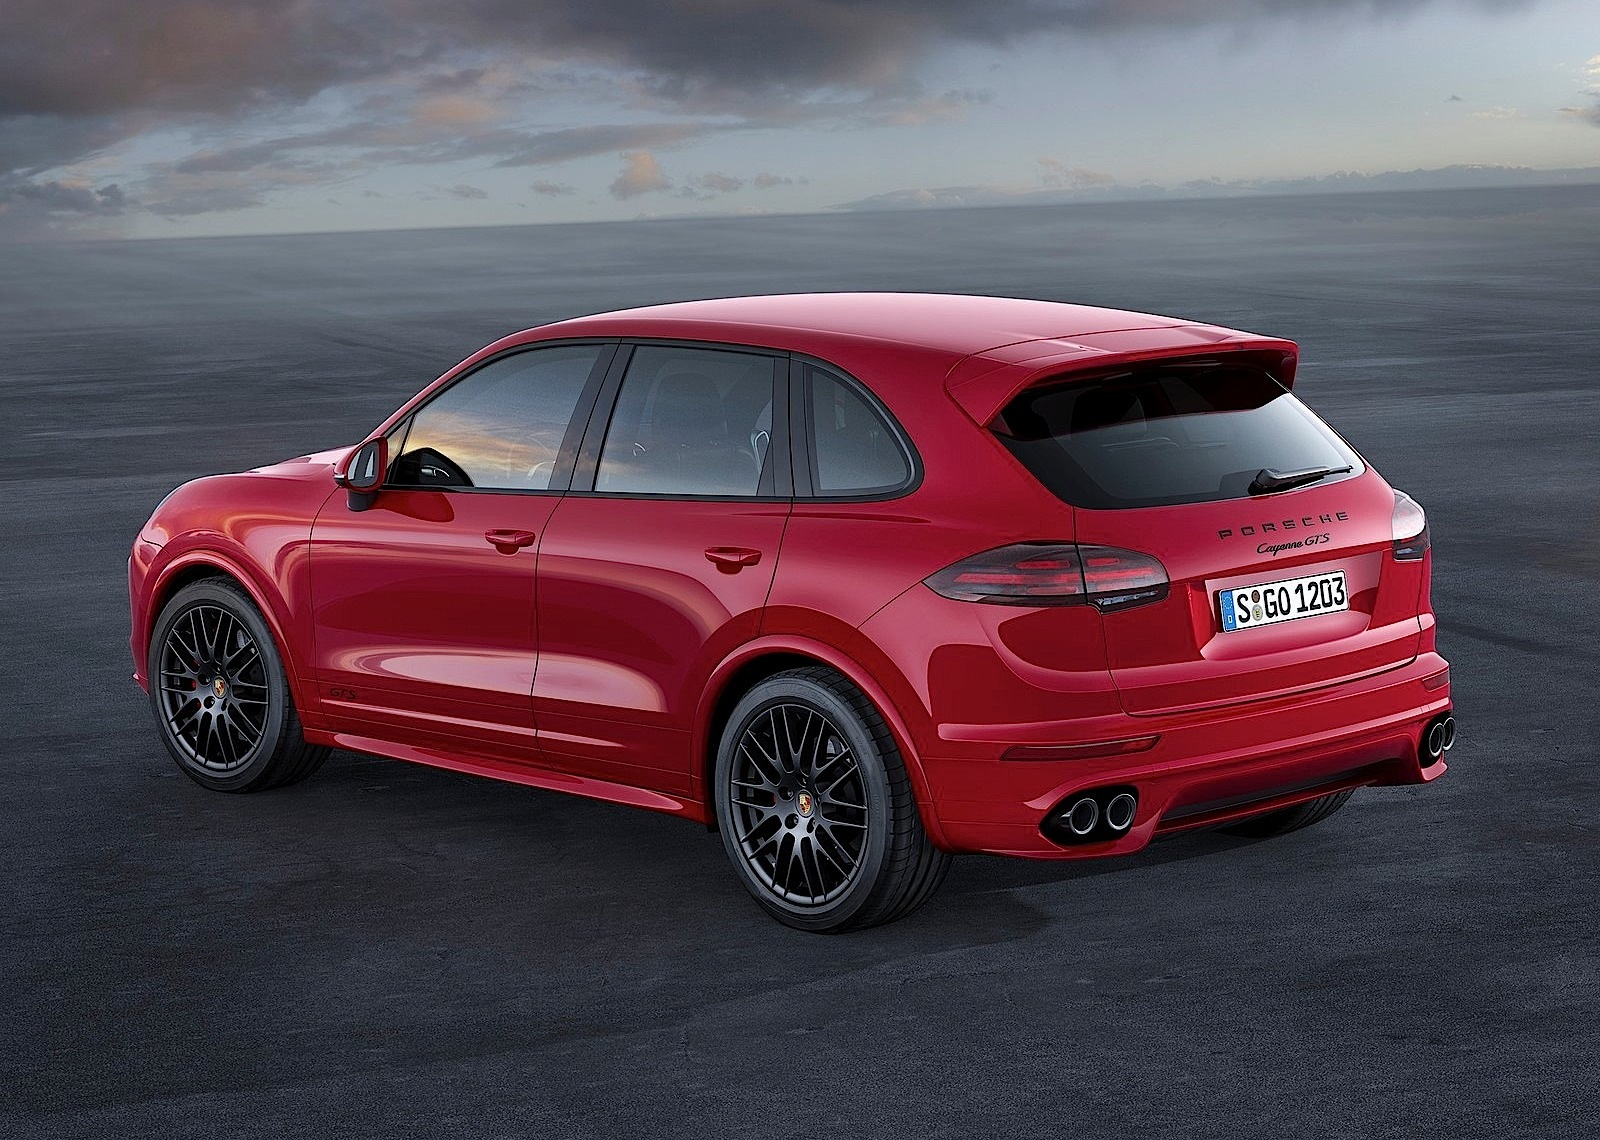 porsche cayenne gts specs photos 2014 2015 2016 2017 2018 autoevolution. Black Bedroom Furniture Sets. Home Design Ideas